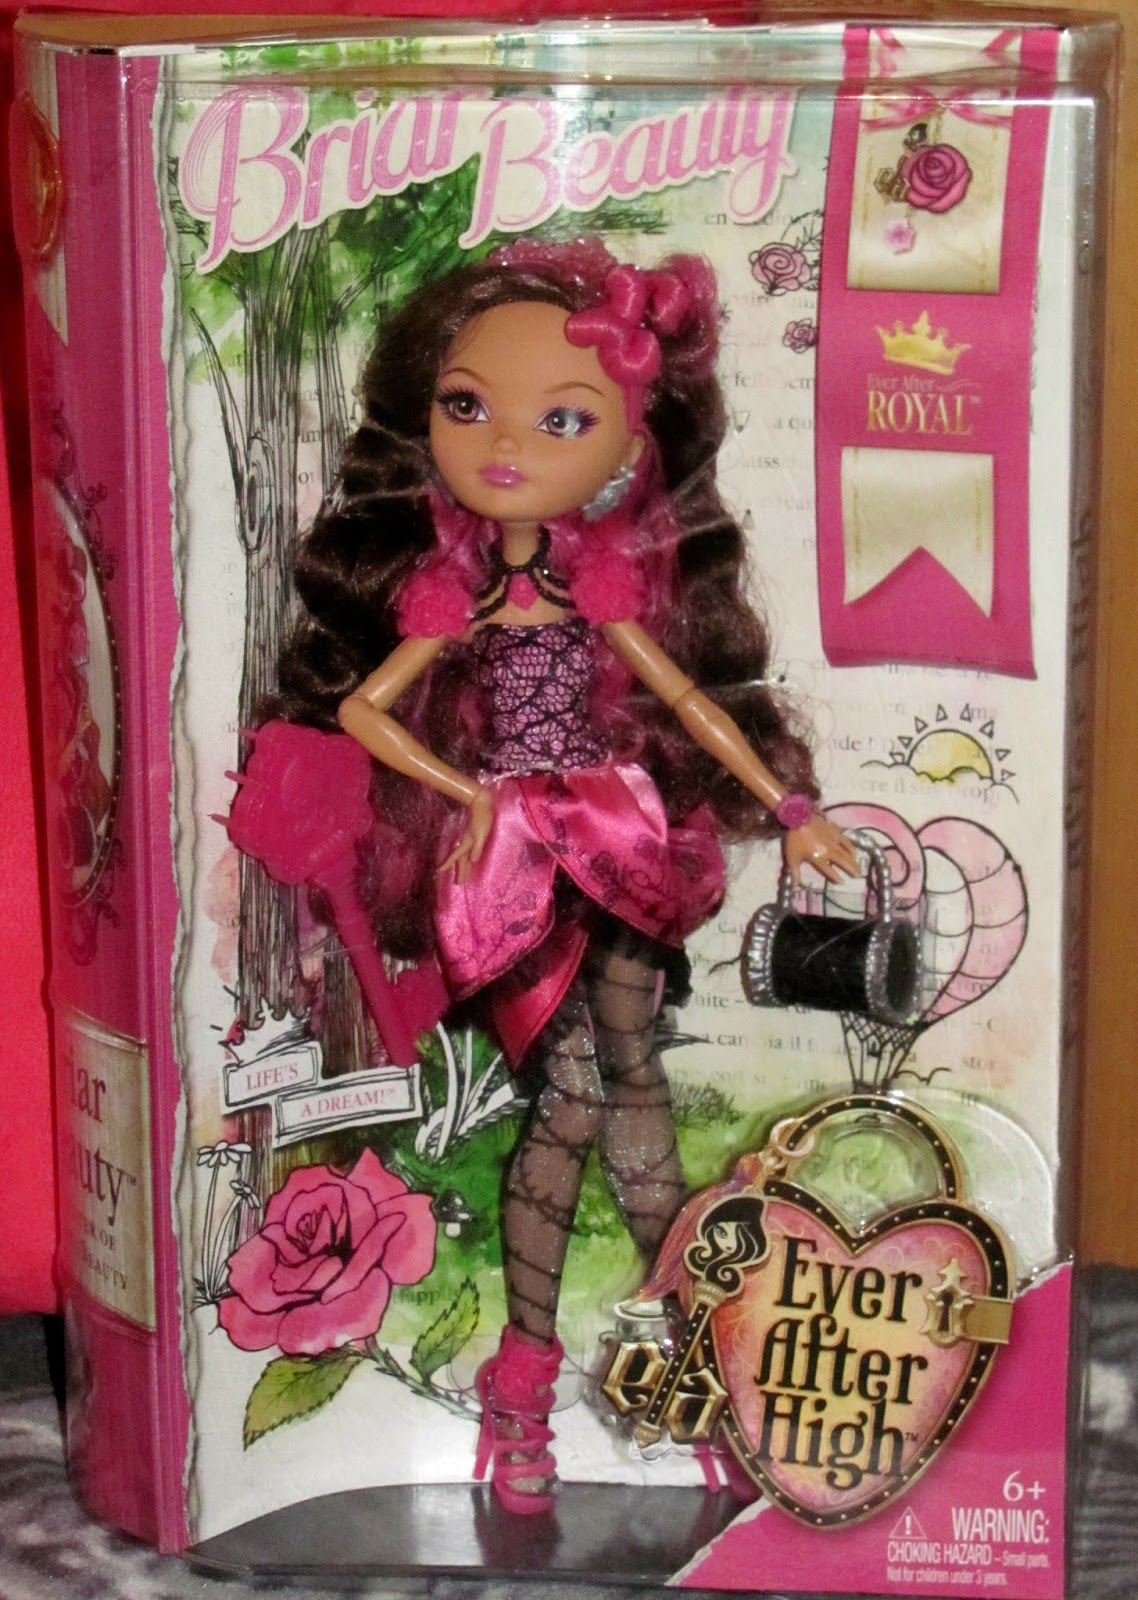 Dolls Within Pictures: Ever After High Briar Beauty Review